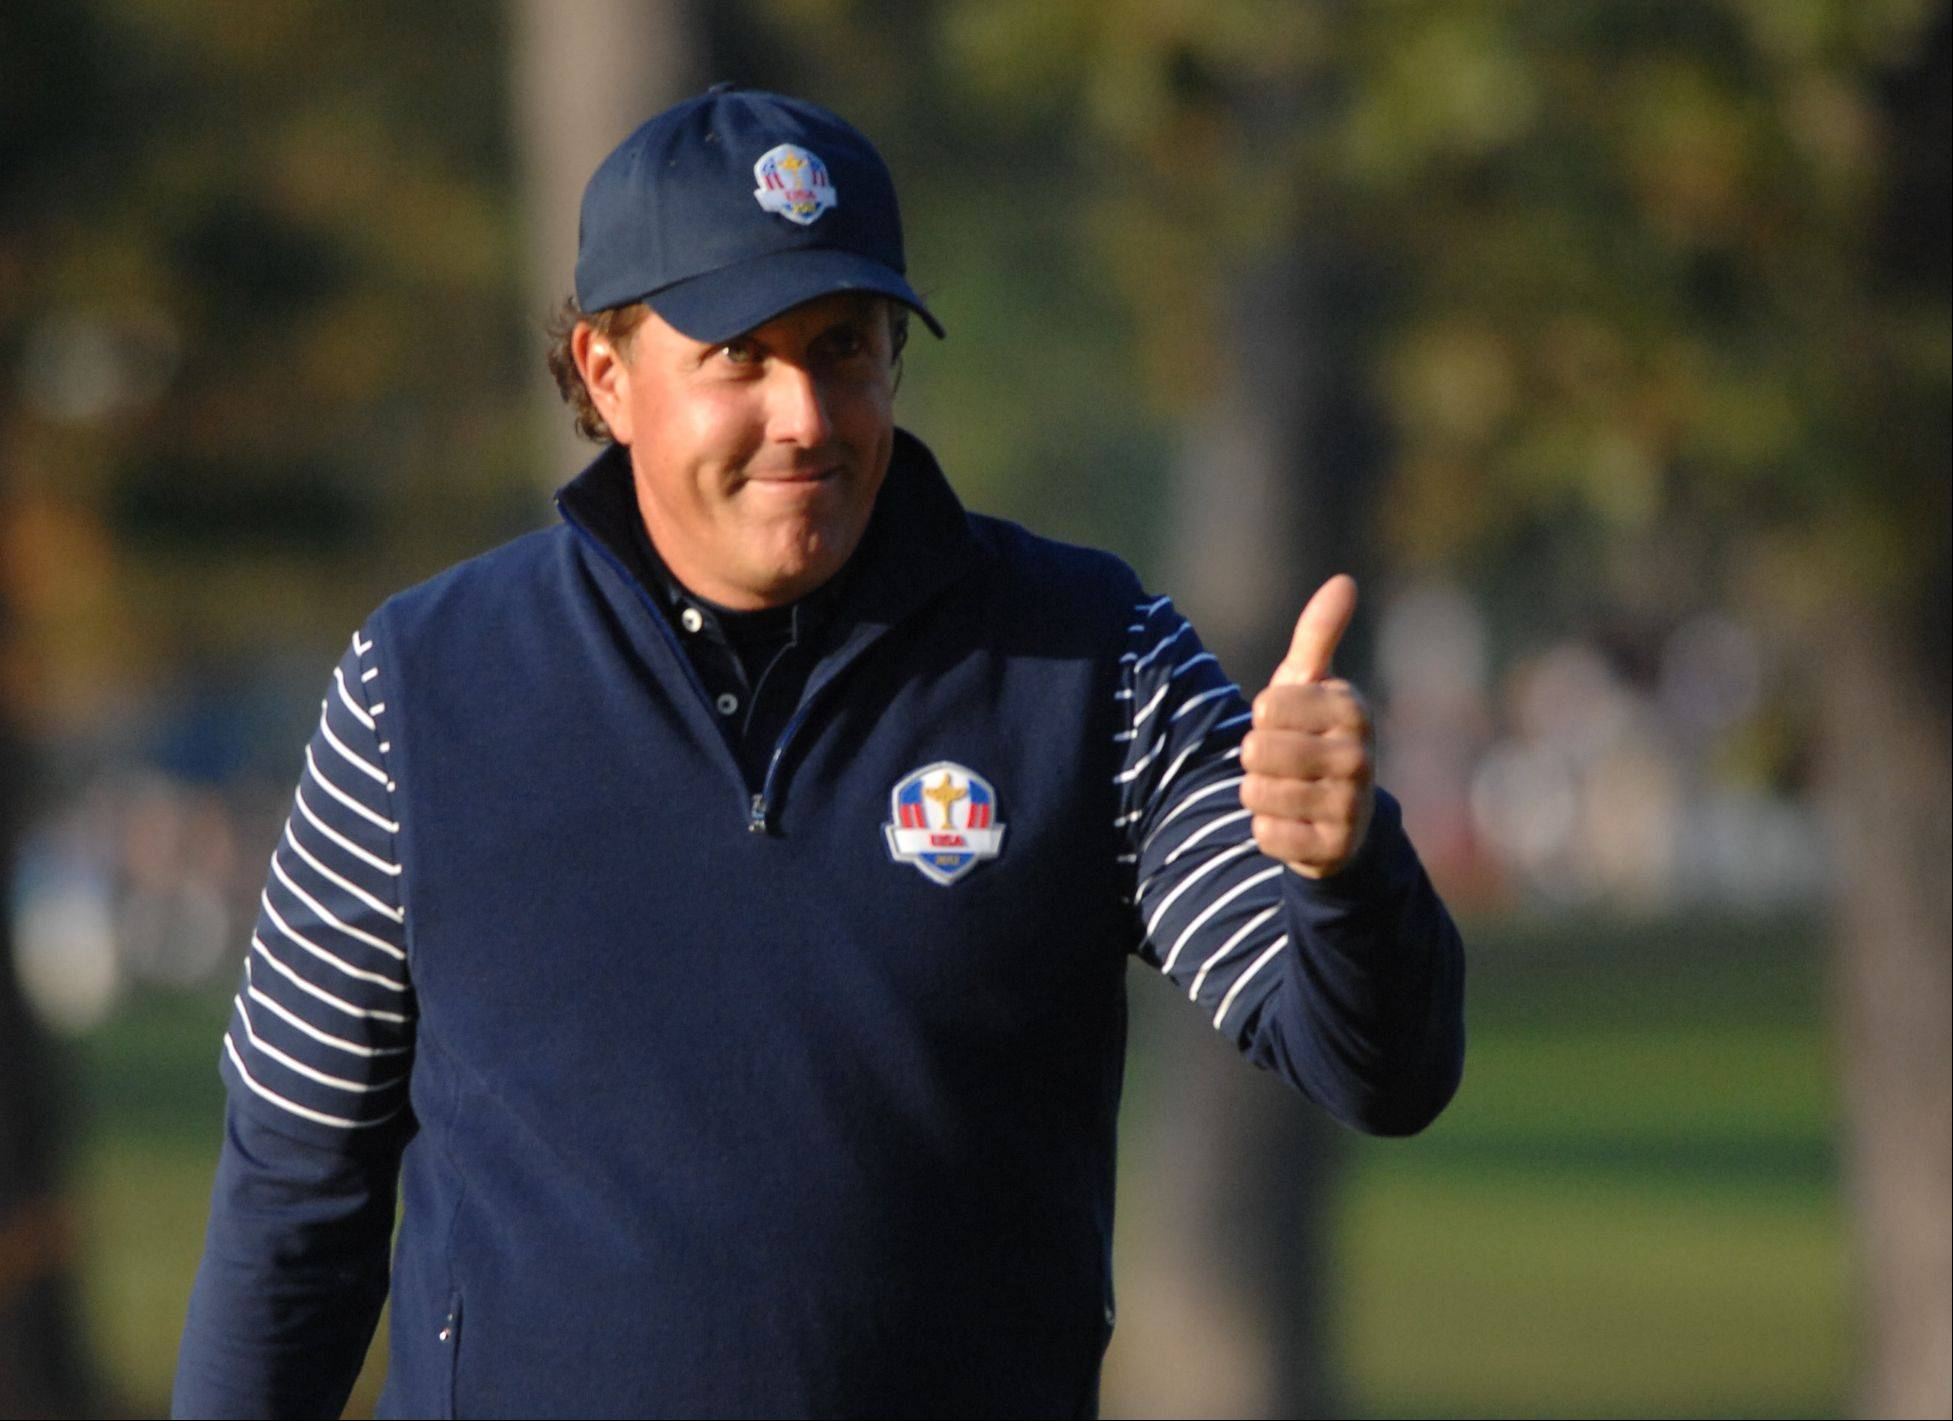 Phil Mickelson gives Keegan Bradley the thumbs-up for hitting a great shot from the rough on the 4th hole that landed on the green Saturday morning during day 2 of the 2012 Ryder Cup at Medinah Country Club.